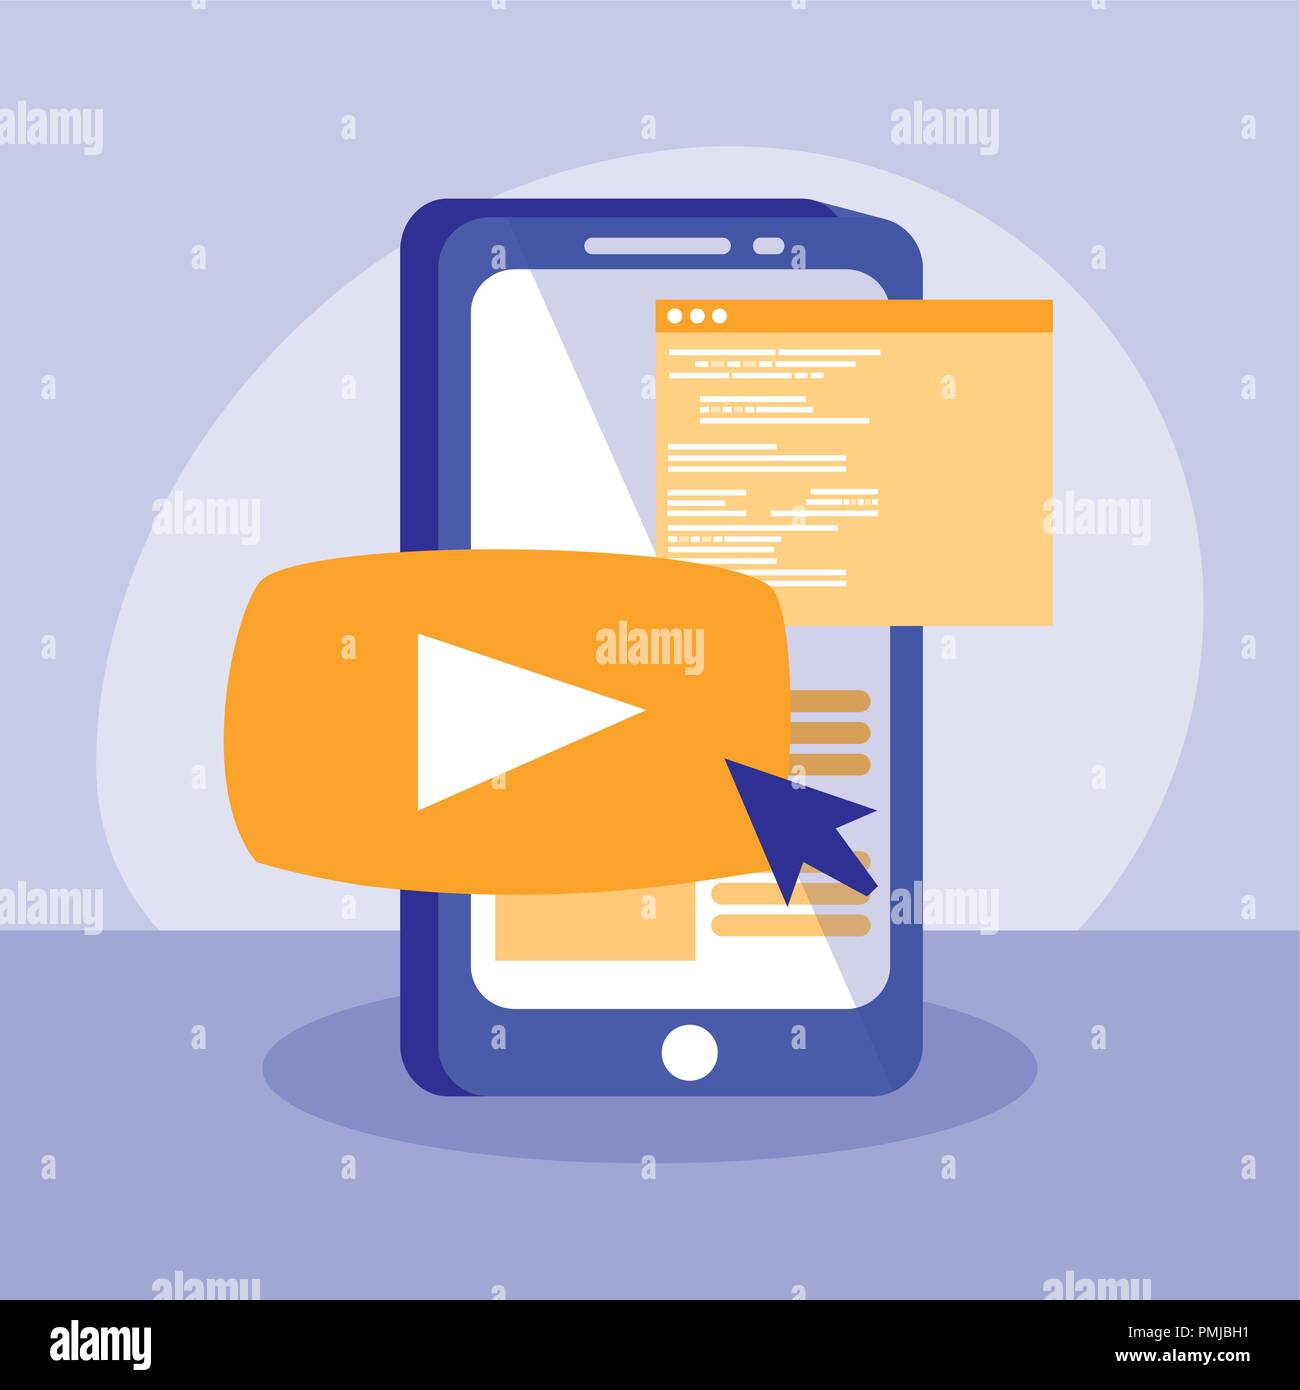 smartphone with webpage templates vector illustration design - Stock Image